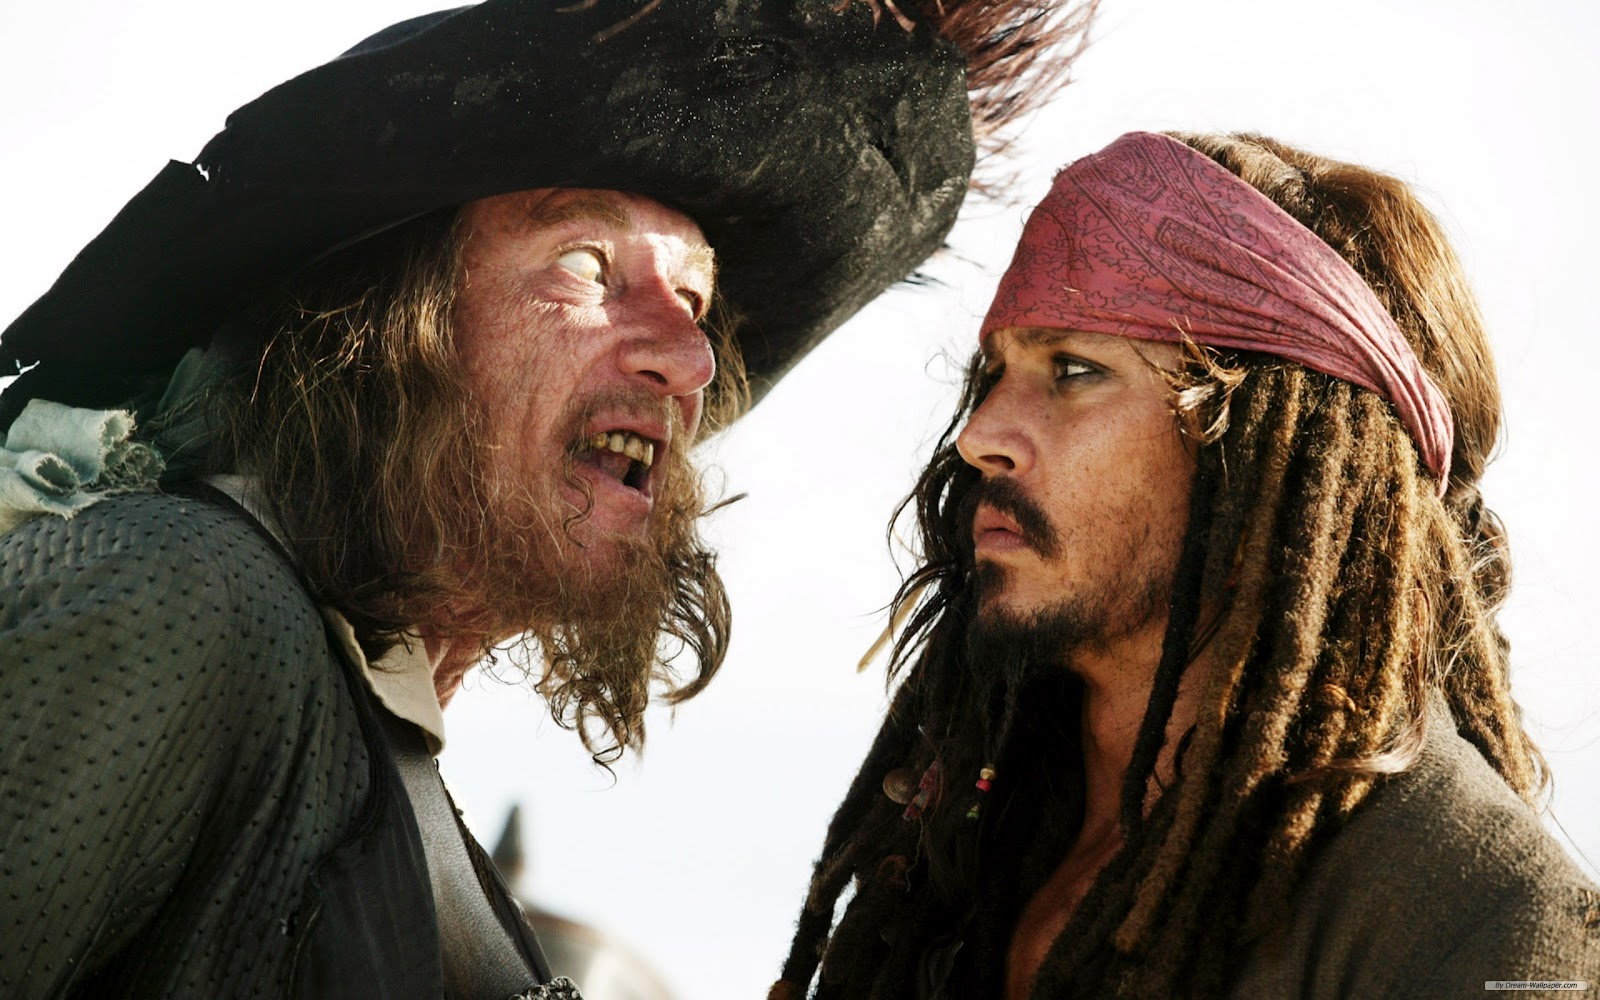 http://4.bp.blogspot.com/-usaU23mV8ng/Ty6U1M9F7eI/AAAAAAAAA-E/Kp9e49NUs2U/s1600/Pirates+of+The+Caribbean+(9).jpg